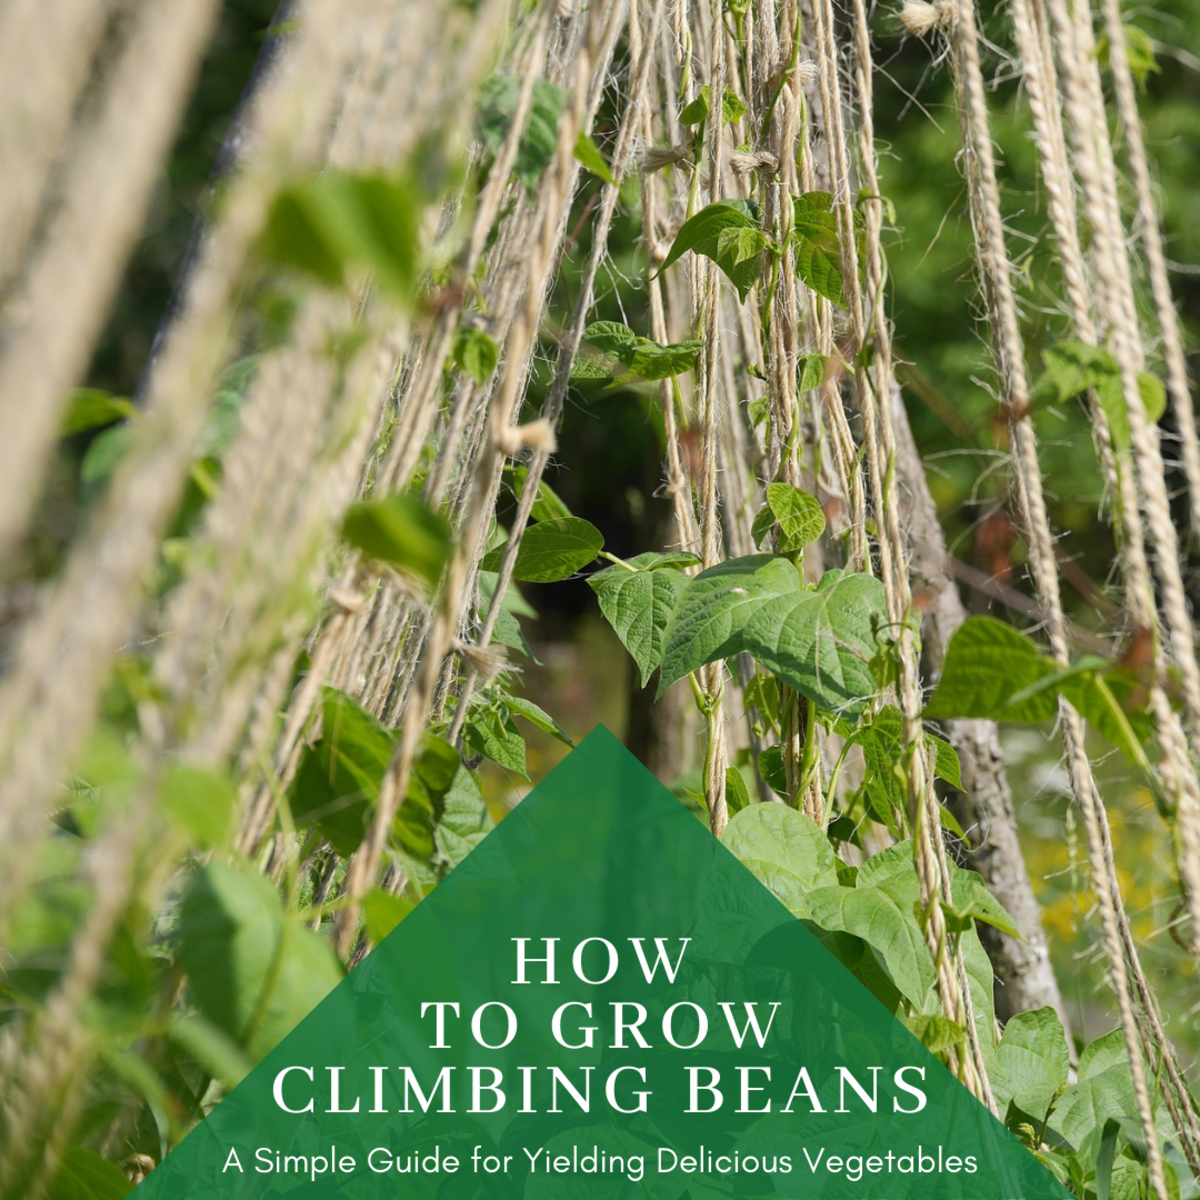 This guide will provide you with all the information you need to know to grow and care for healthy climbing bean plants.